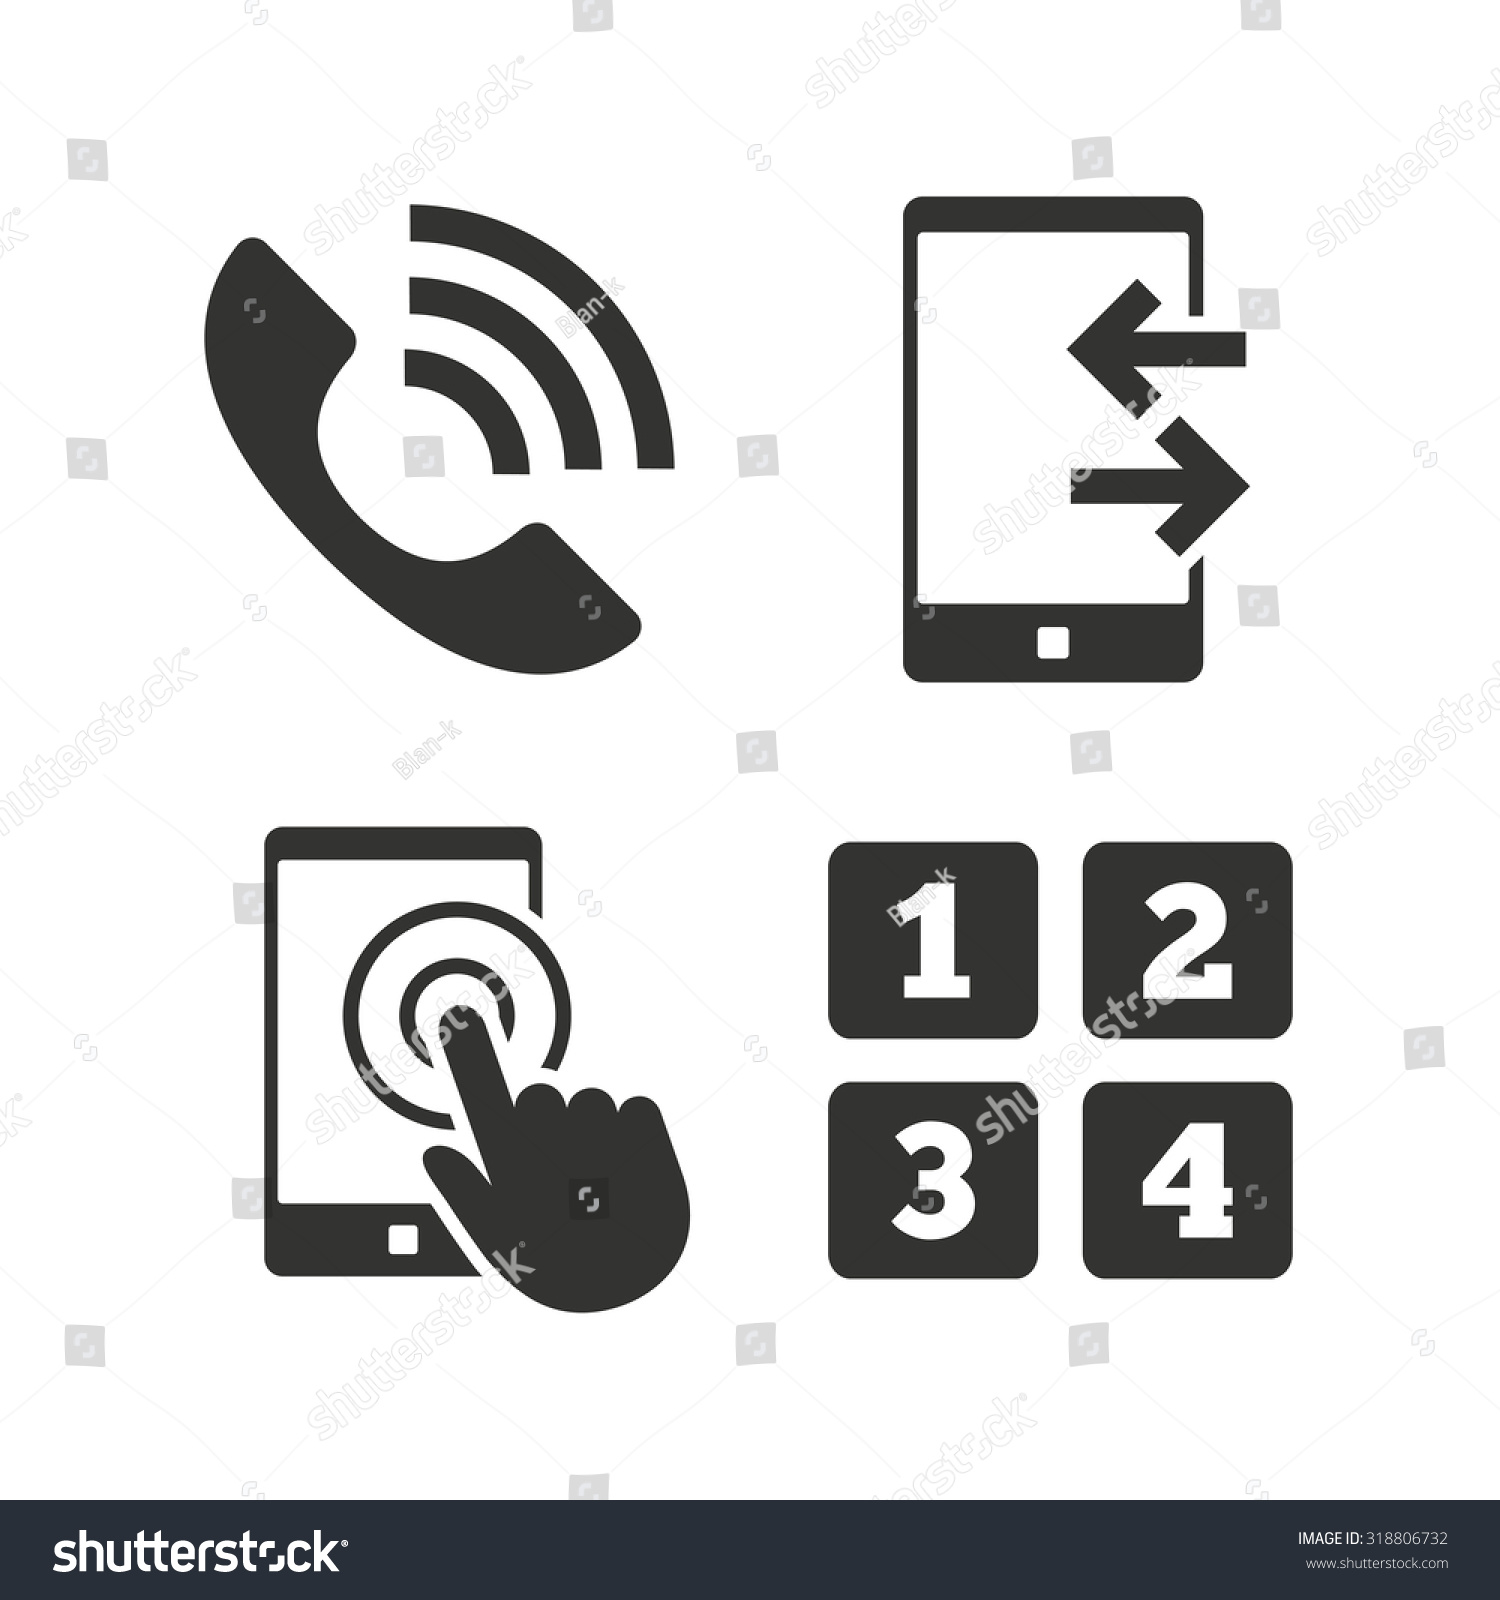 Phone icons touch screen smartphone sign stock vector 318806732 phone icons touch screen smartphone sign call center support symbol cellphone keyboard symbol biocorpaavc Gallery